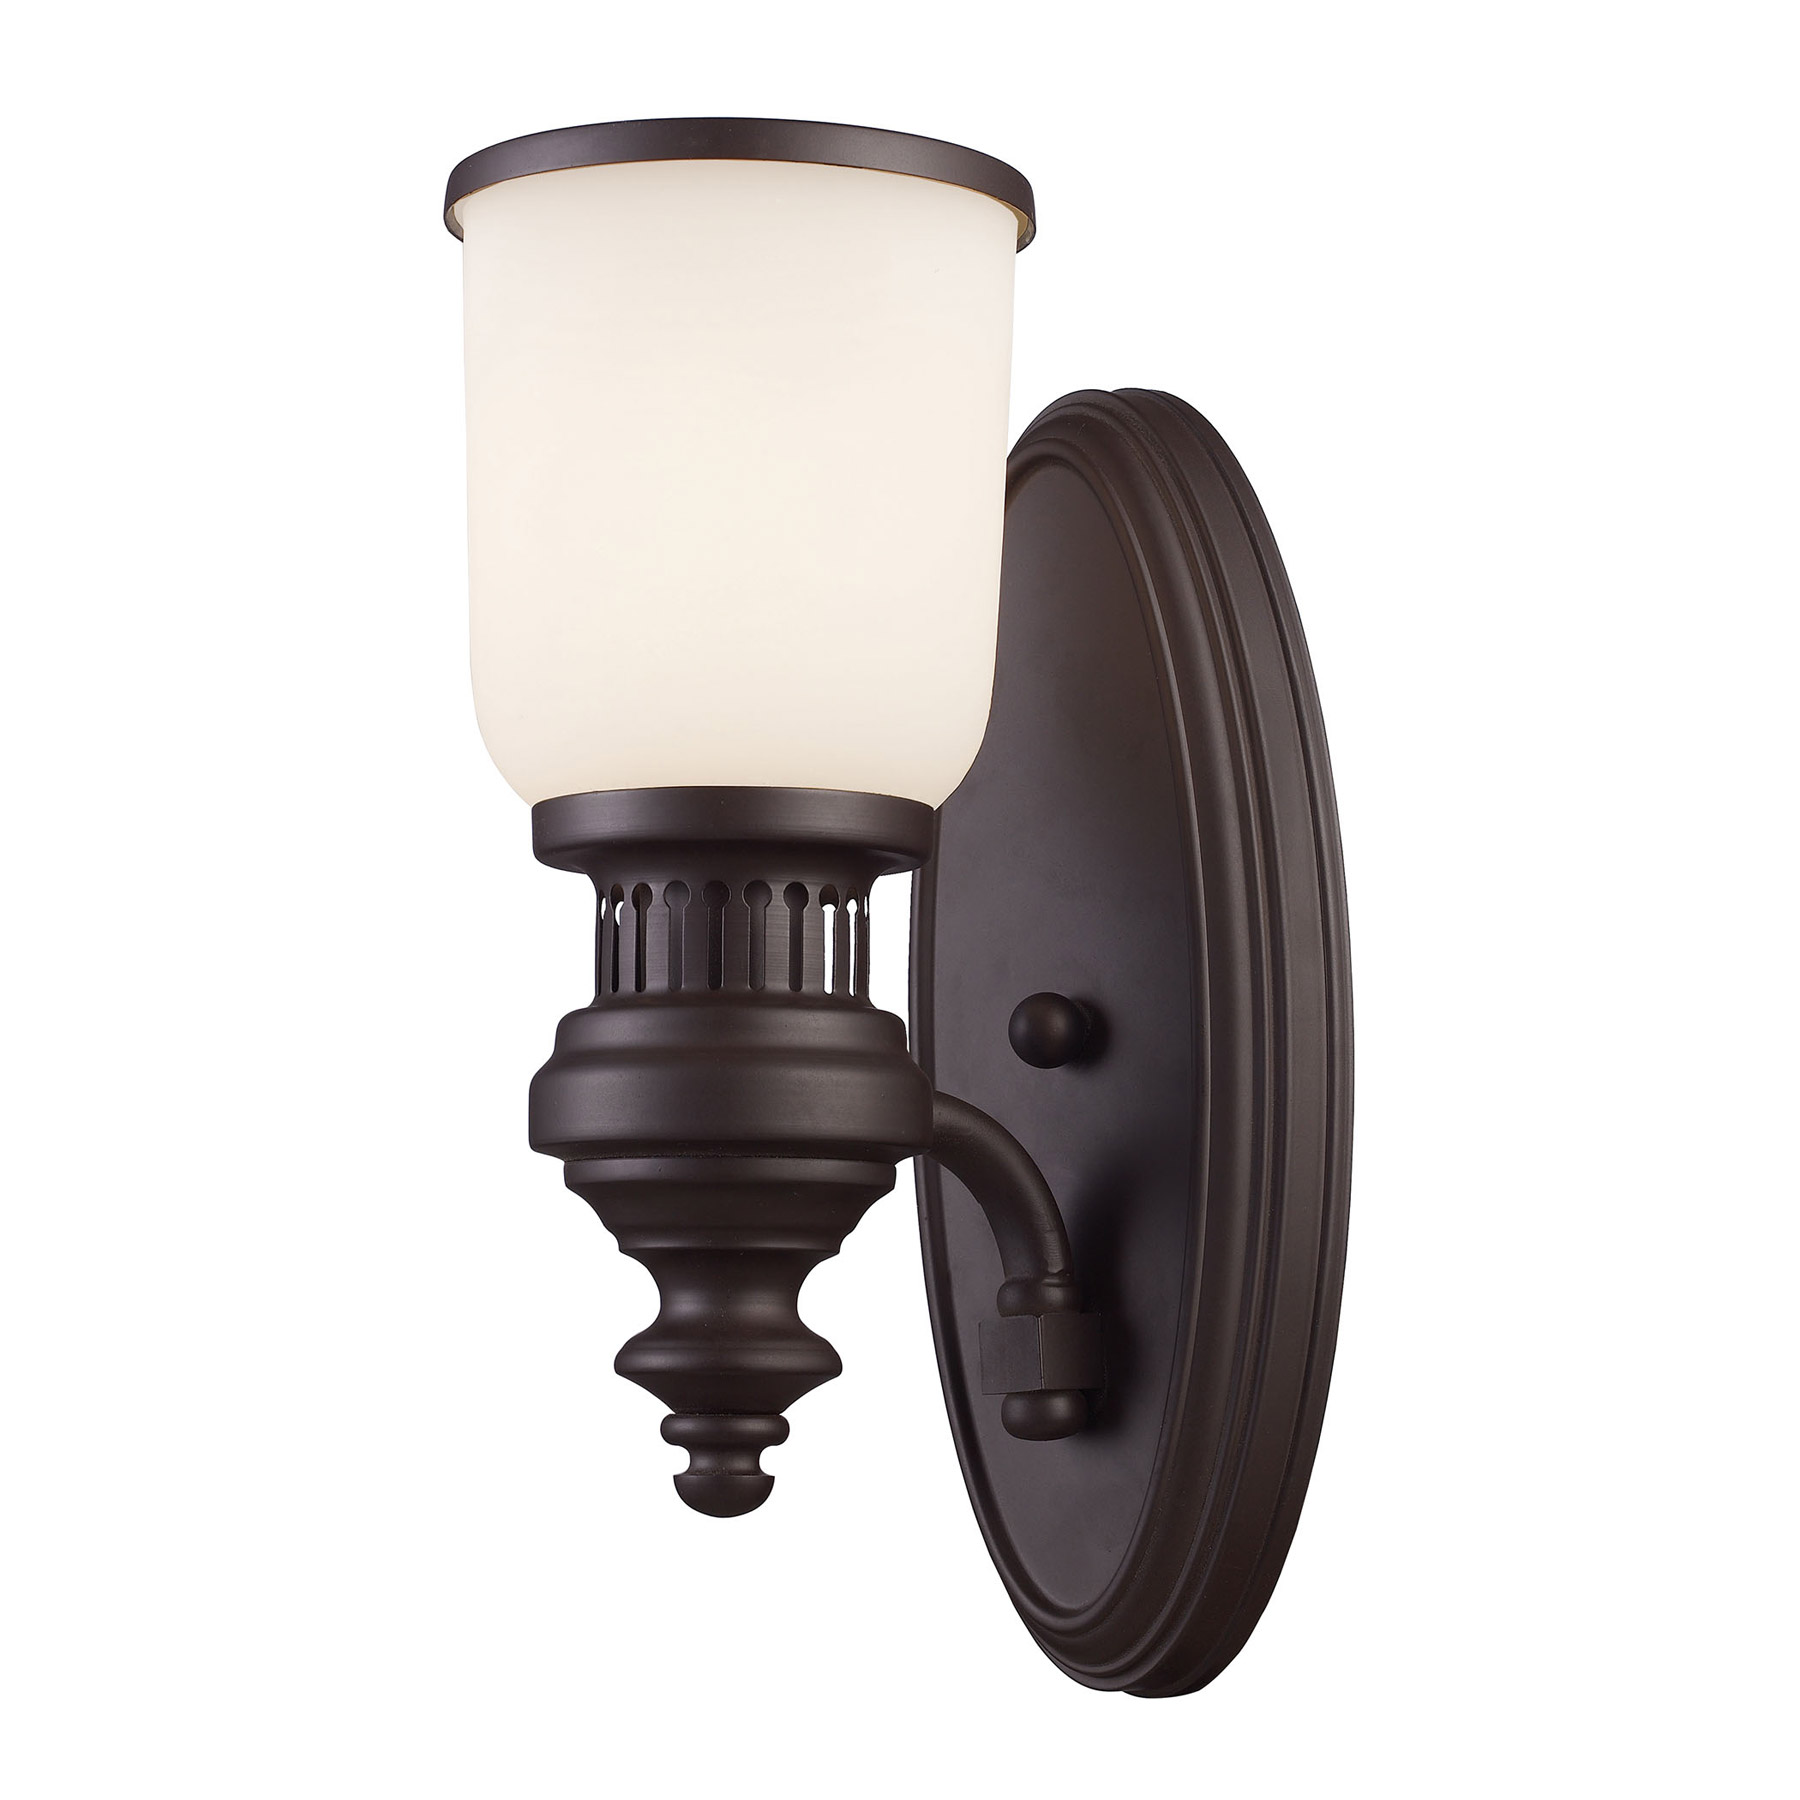 Elk Lighting 66630 1 Chadwick Light Wall Sconce In Oiled